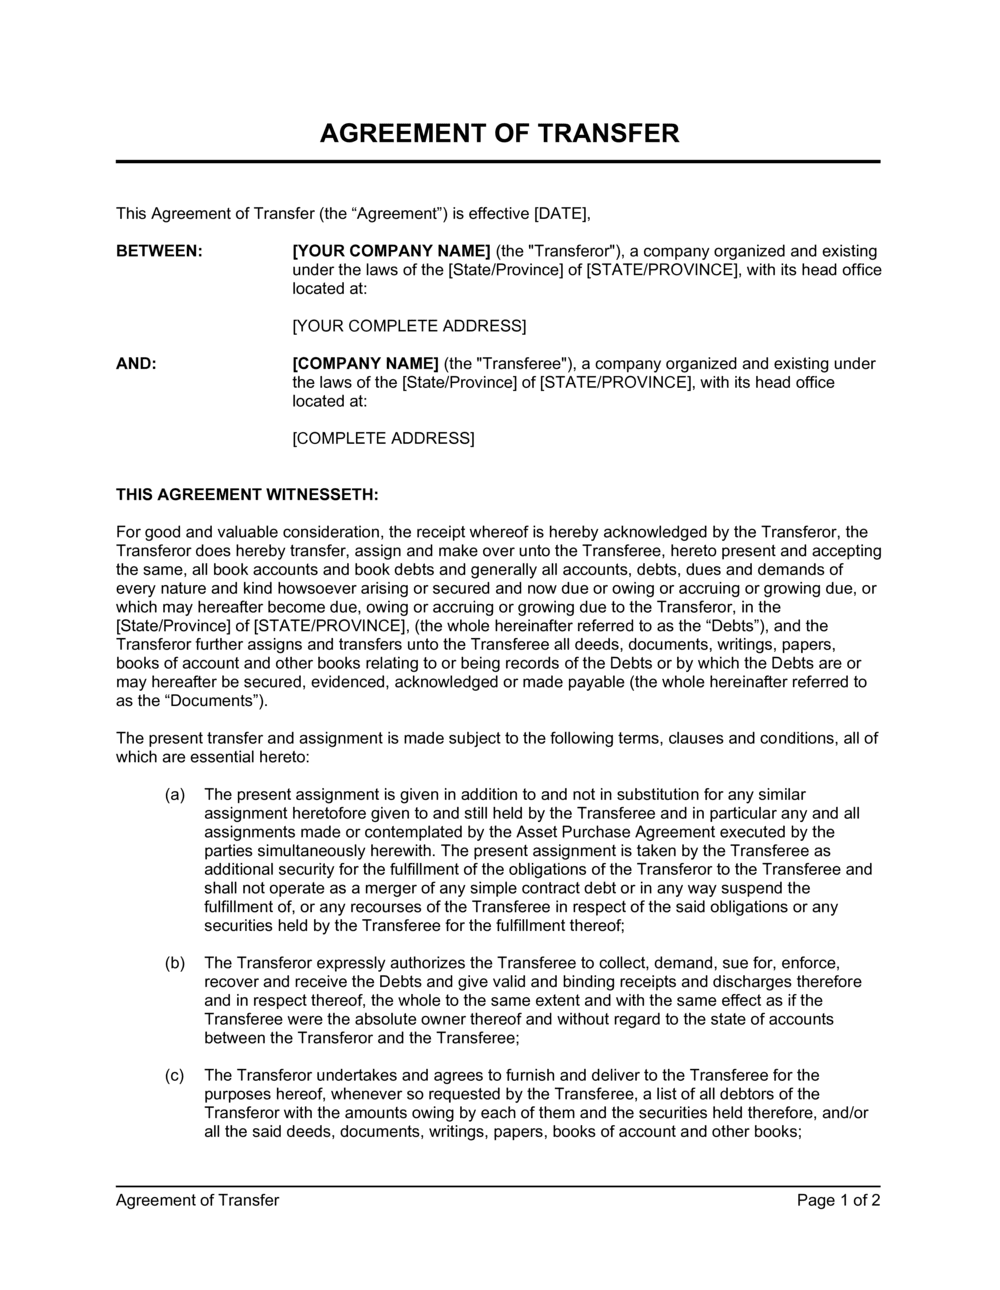 Business-in-a-Box's Agreement of Transfer Template